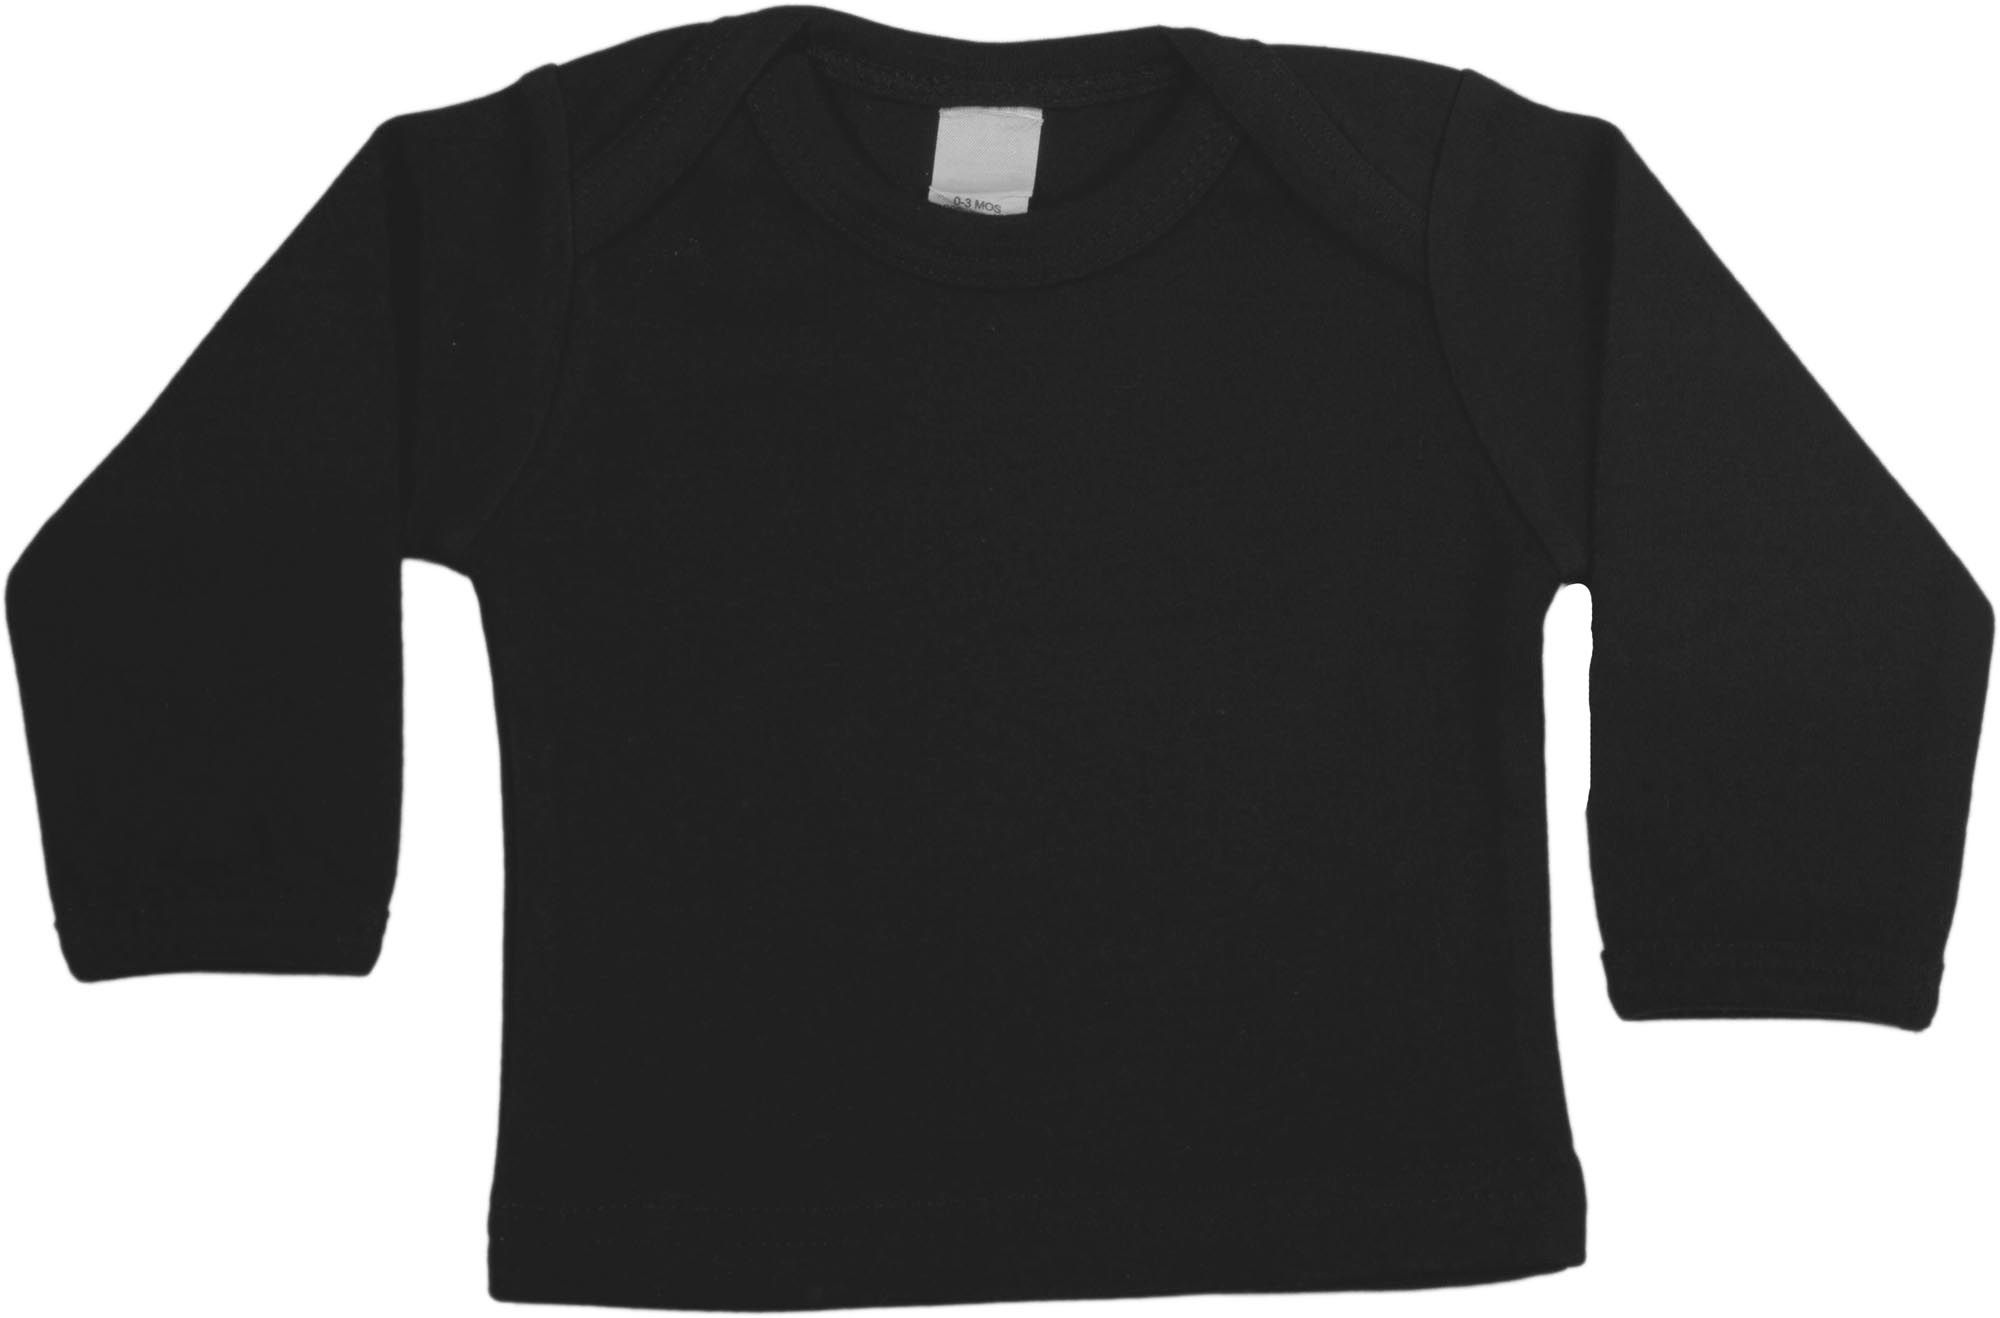 Black Long Sleeve Baby Shirt by Baby Milano